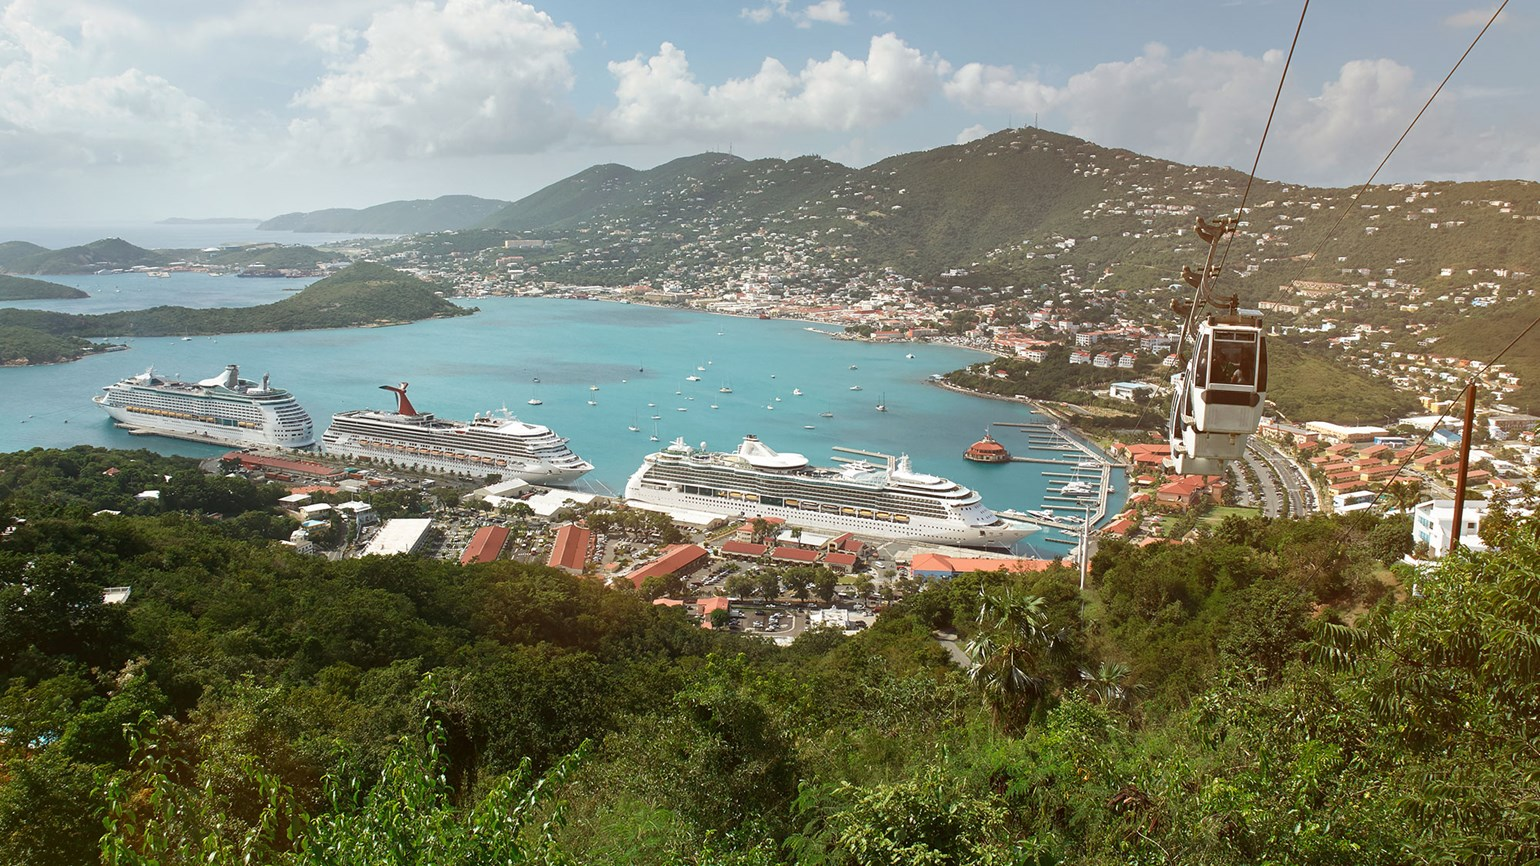 Royal Caribbean returning to St. Thomas in November